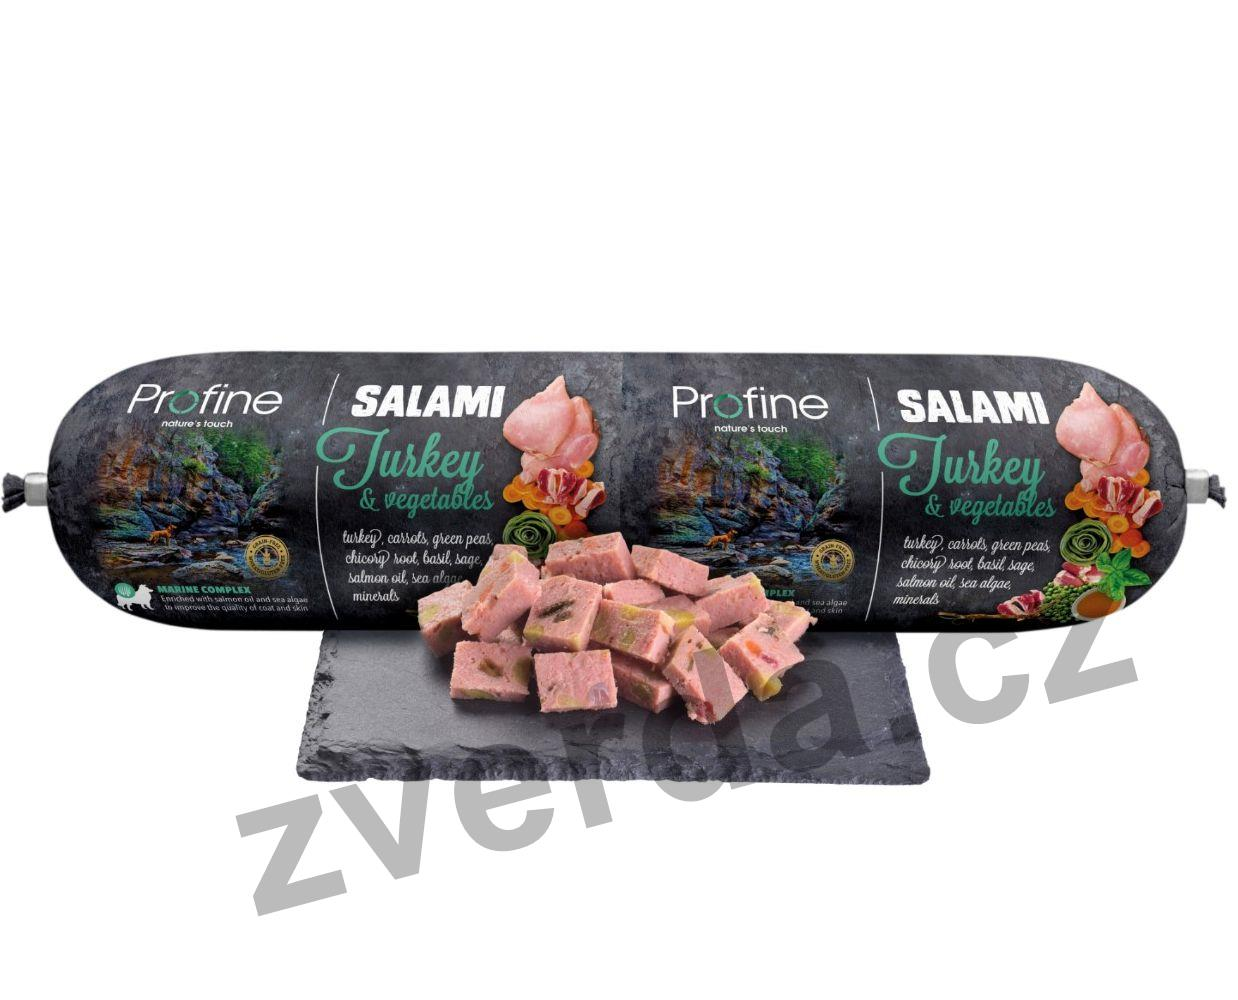 Profine Salami Turkey & Vegetables 800g